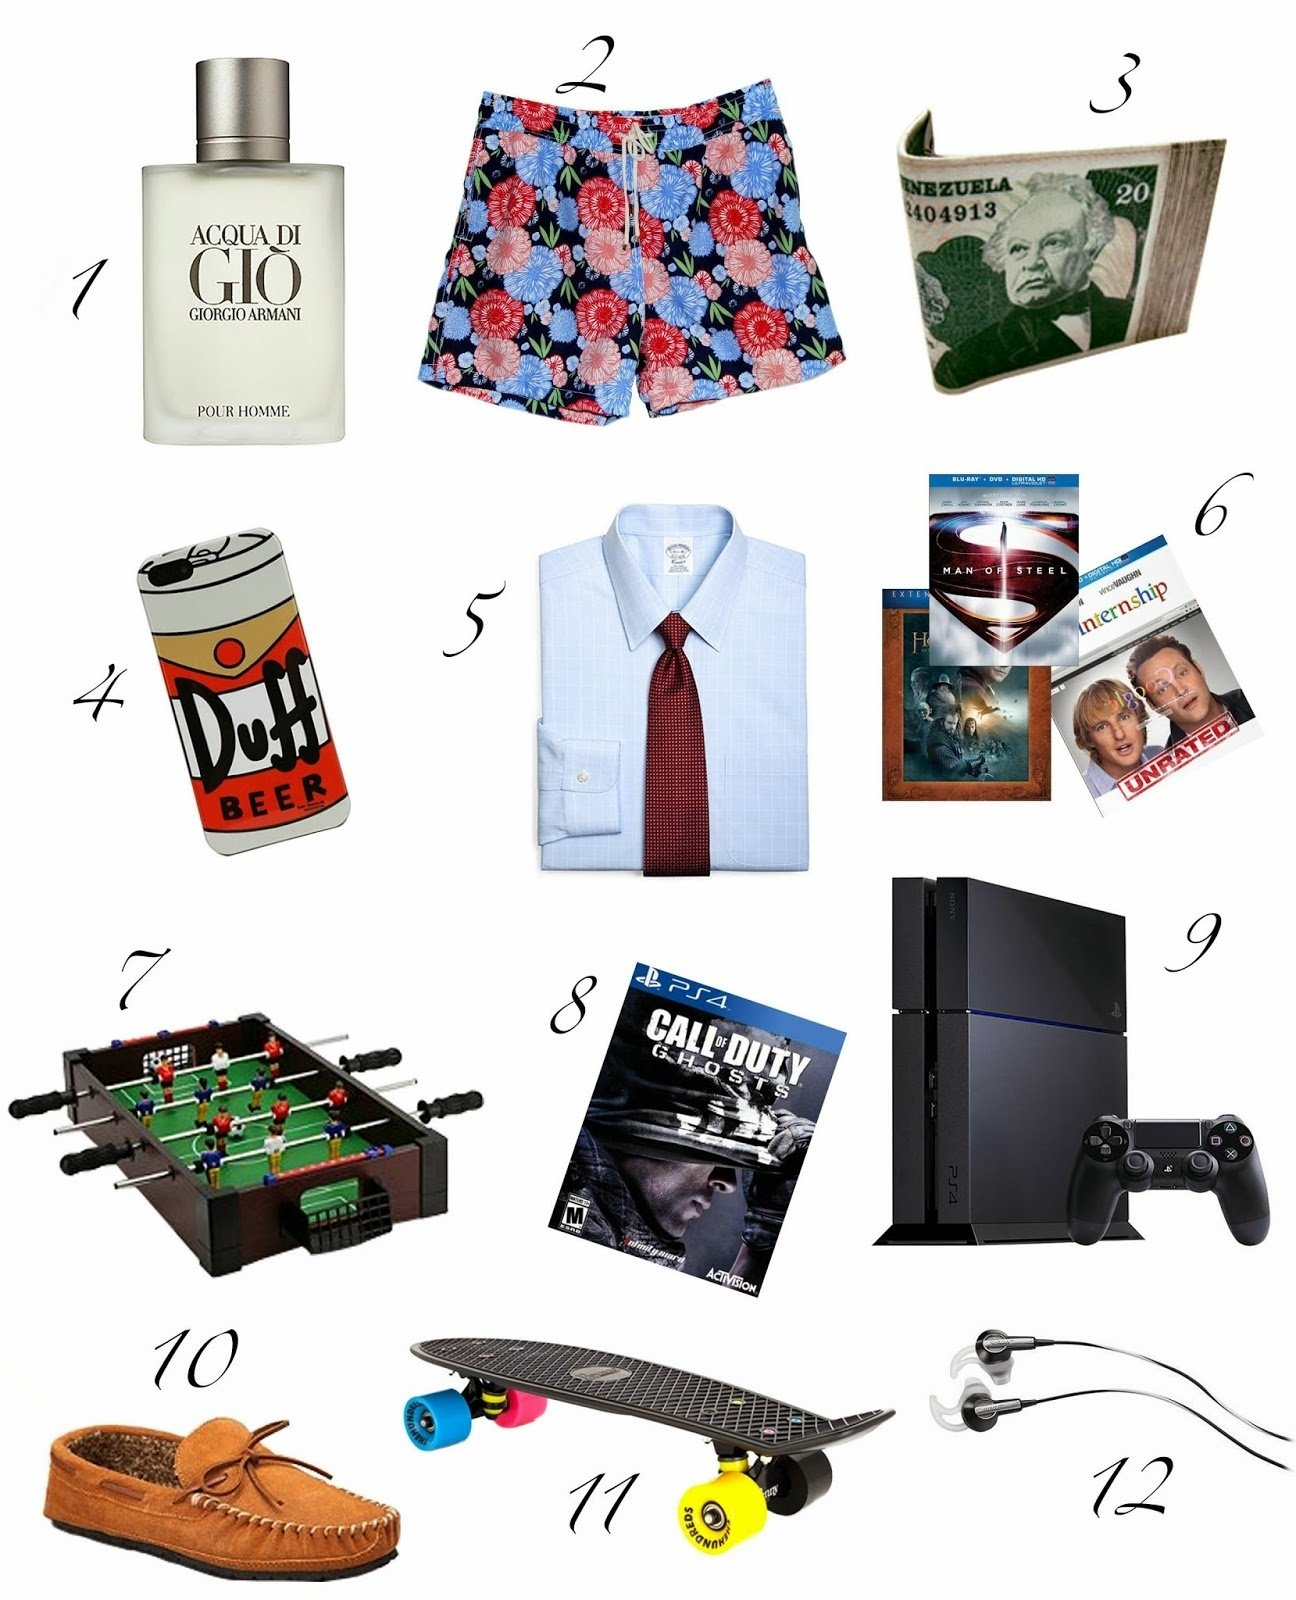 10 Spectacular Cool Birthday Gift Ideas For Guys gifts design ideas crazy impressive gift ideas for men in their 20s